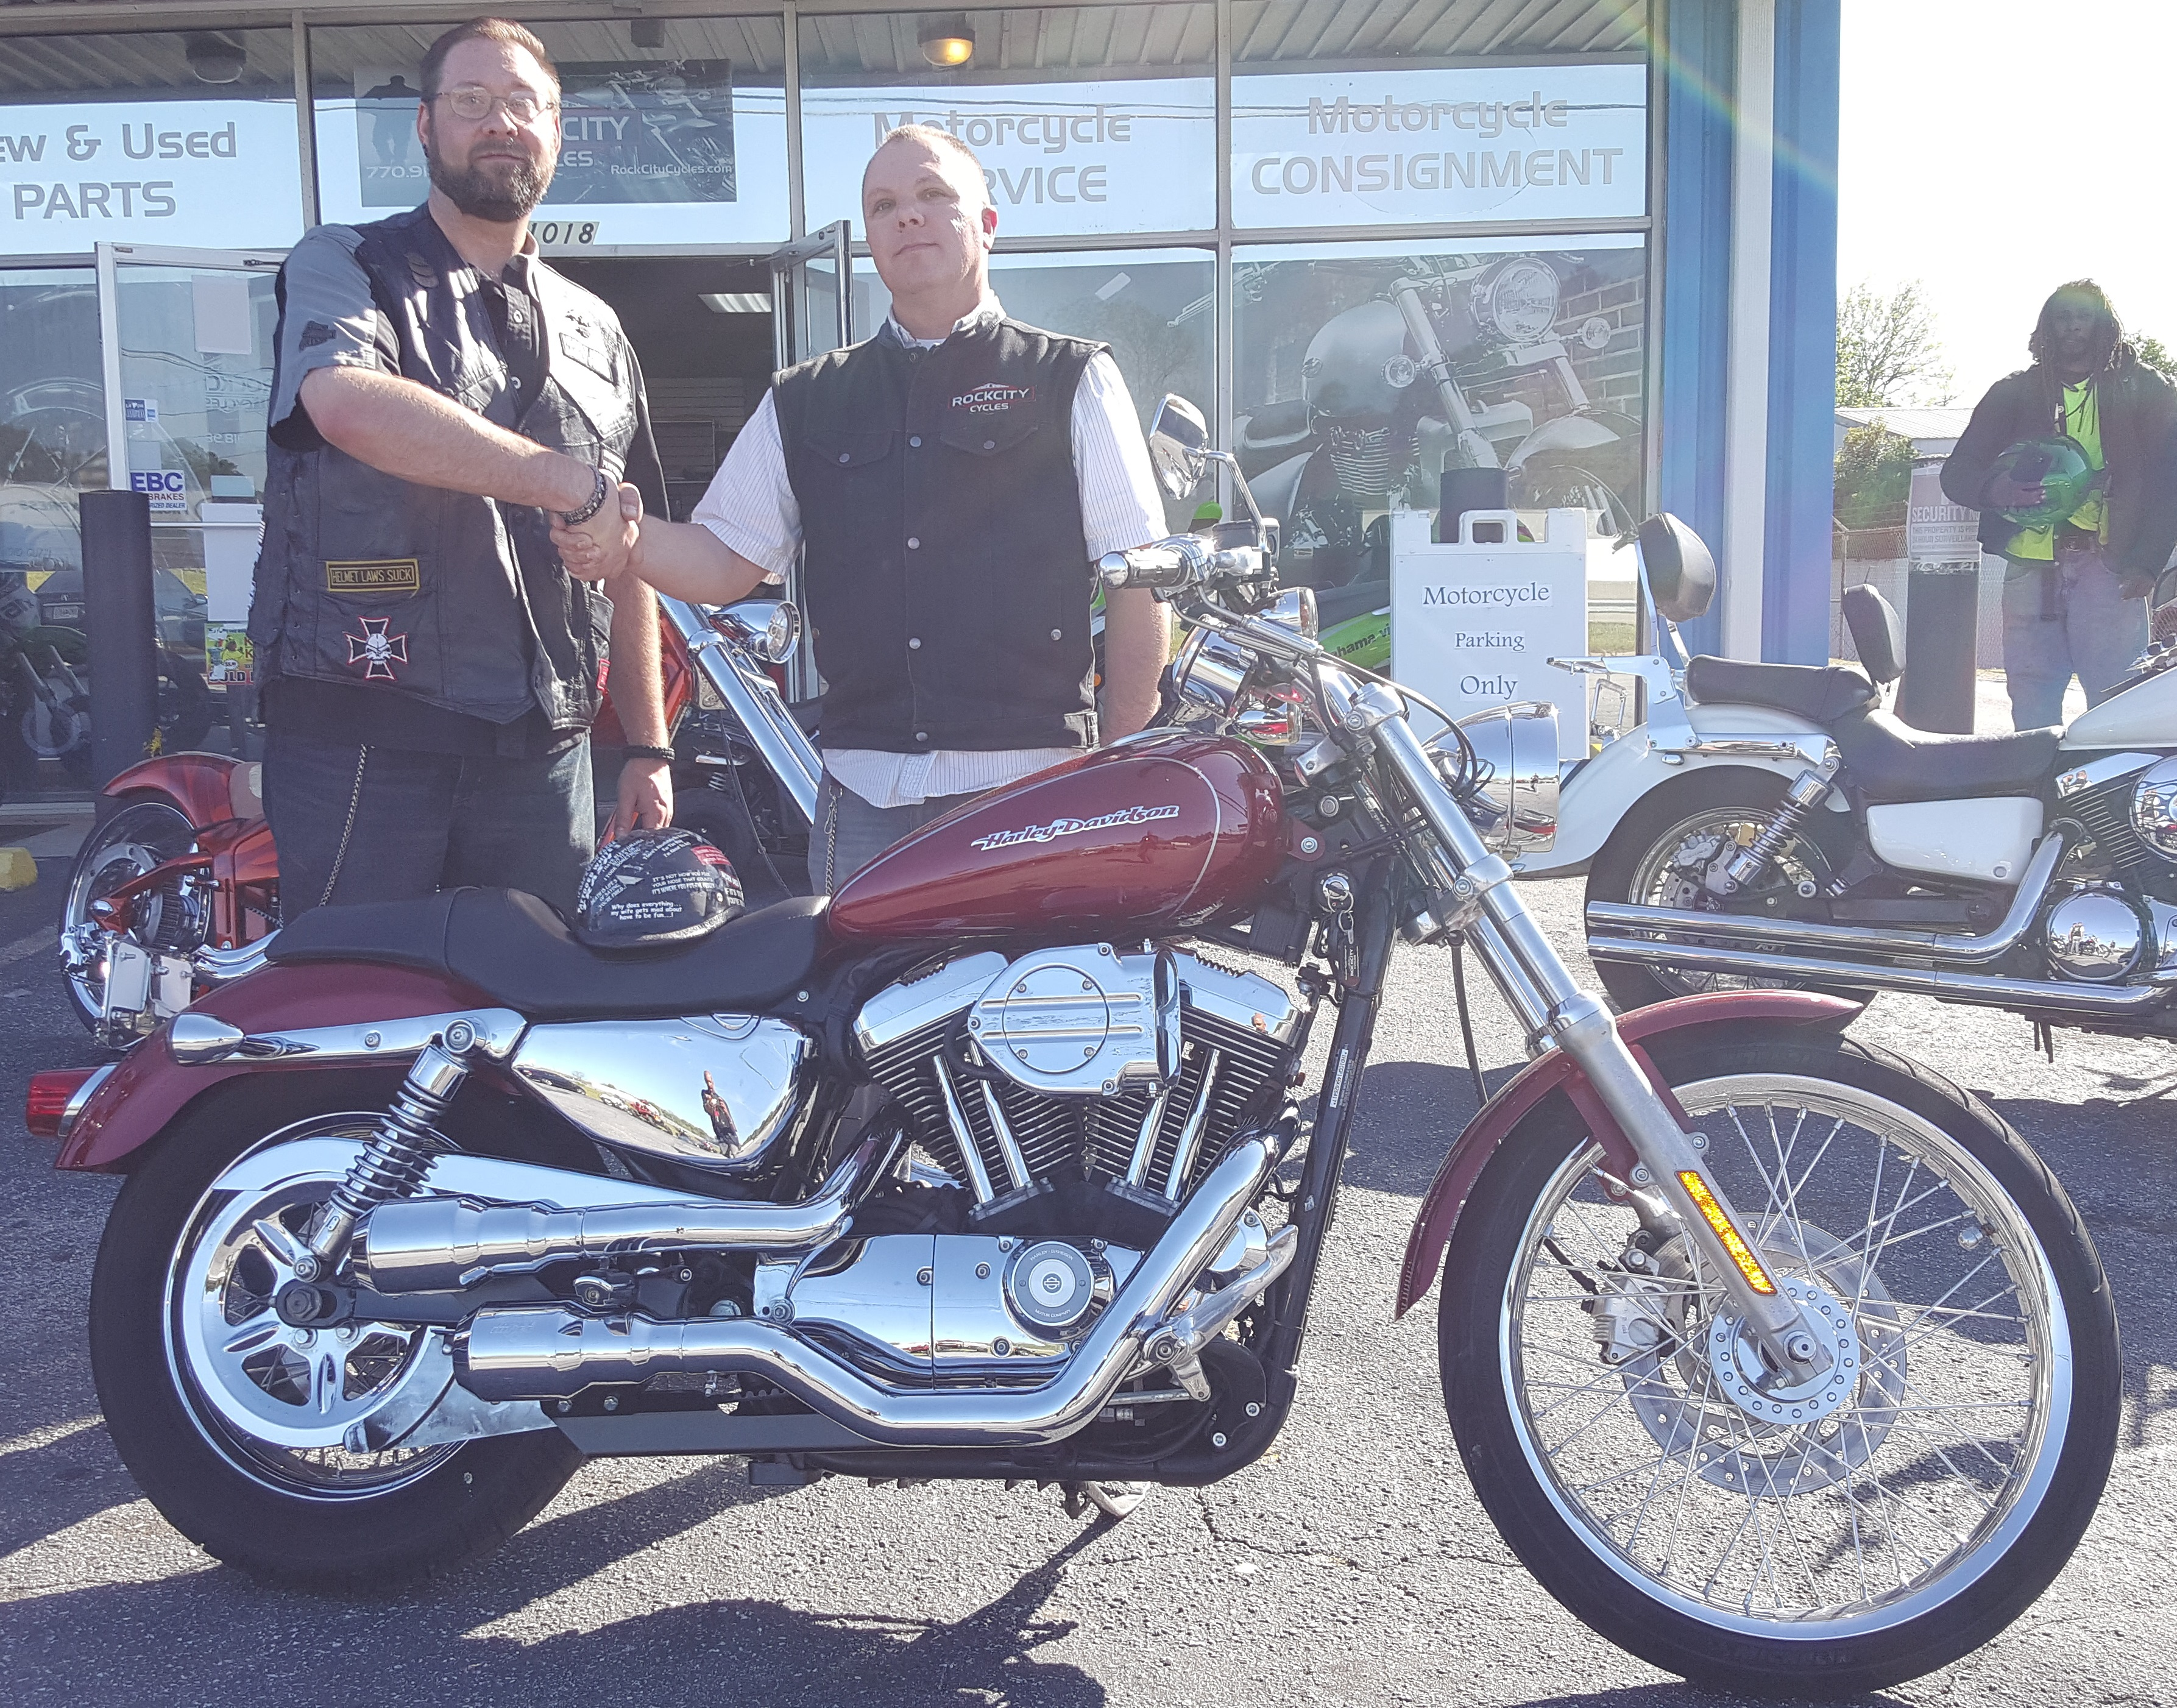 Scott N. with his 2007 Harley-Davidson XL1200 Sportster